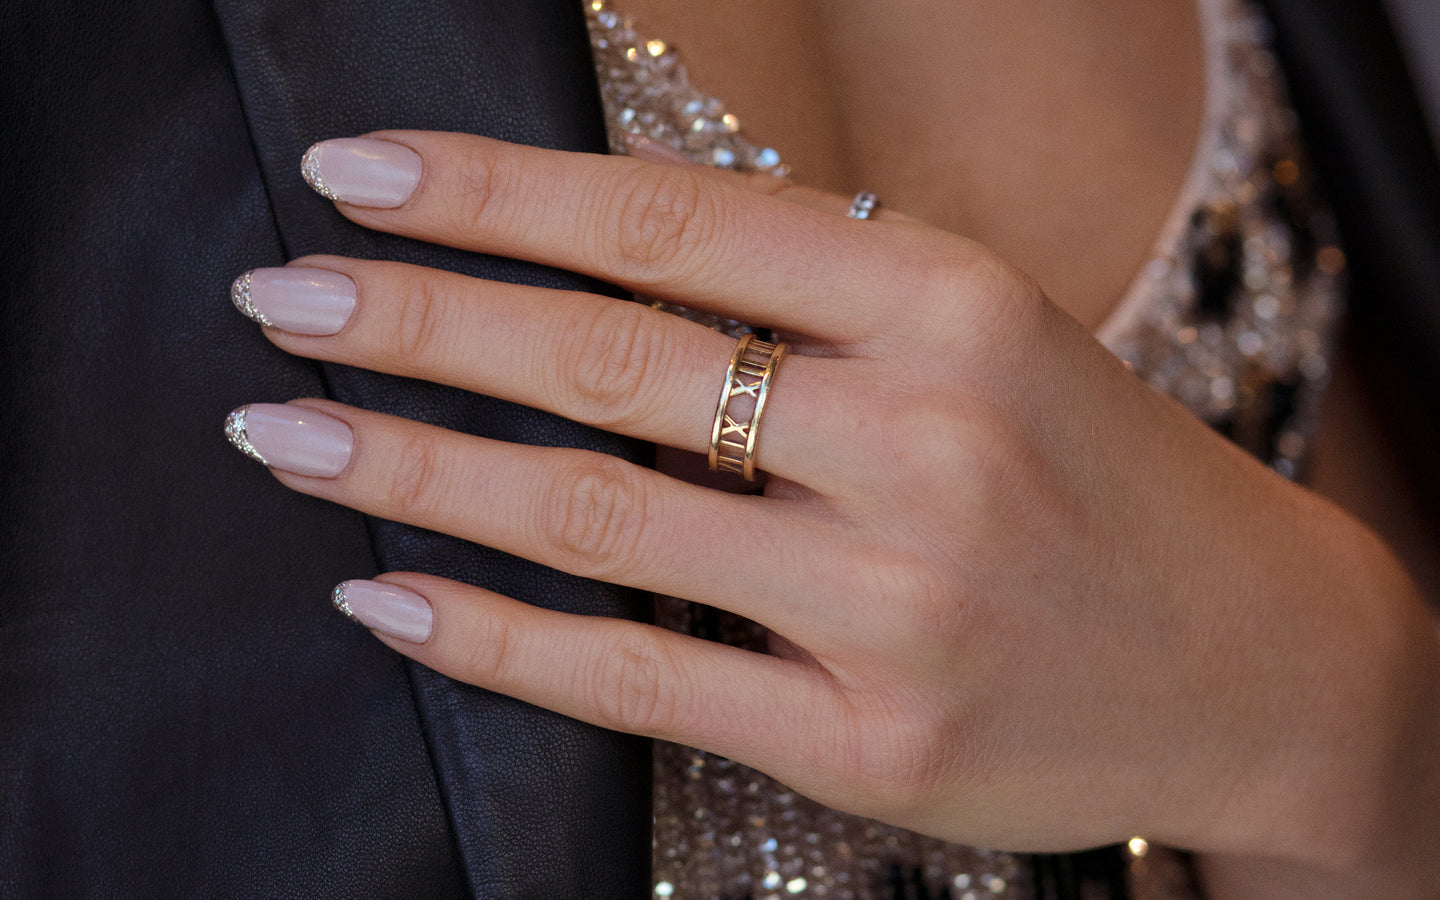 Nails of New York: Brooke Monahan